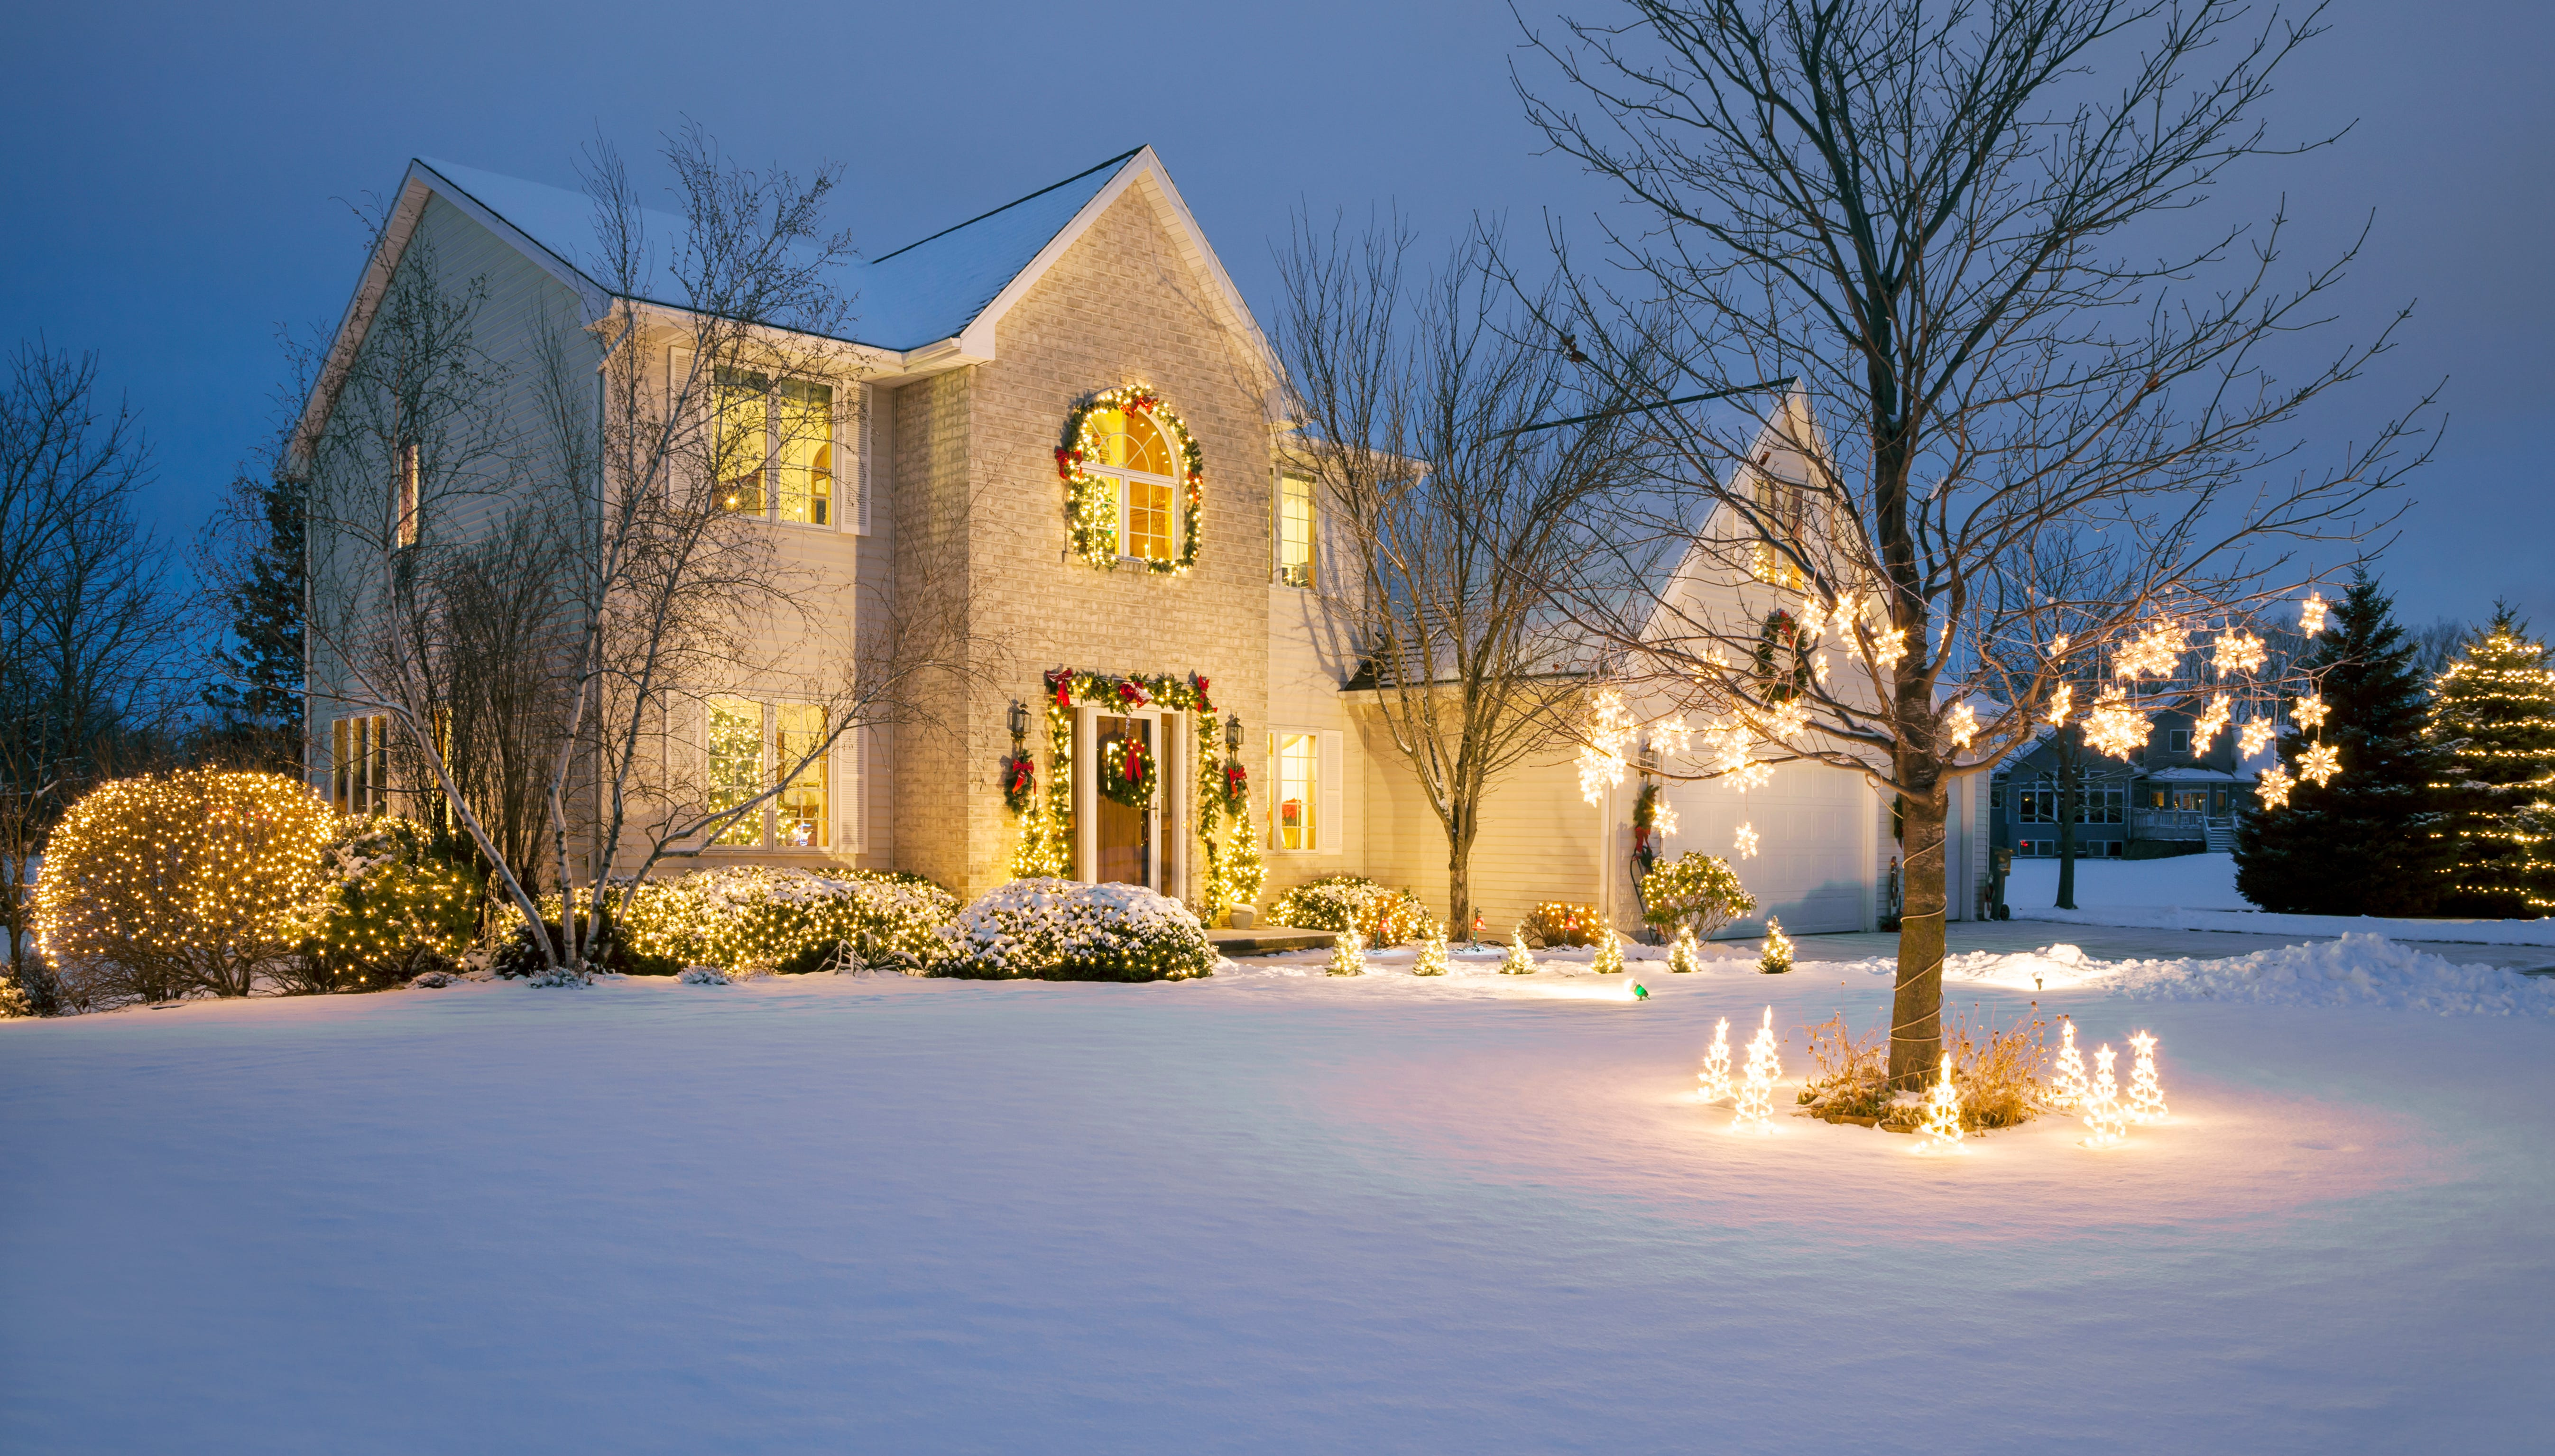 If you're planning to travel during the holidays, you should take the time to get your house ready for your trip, too.